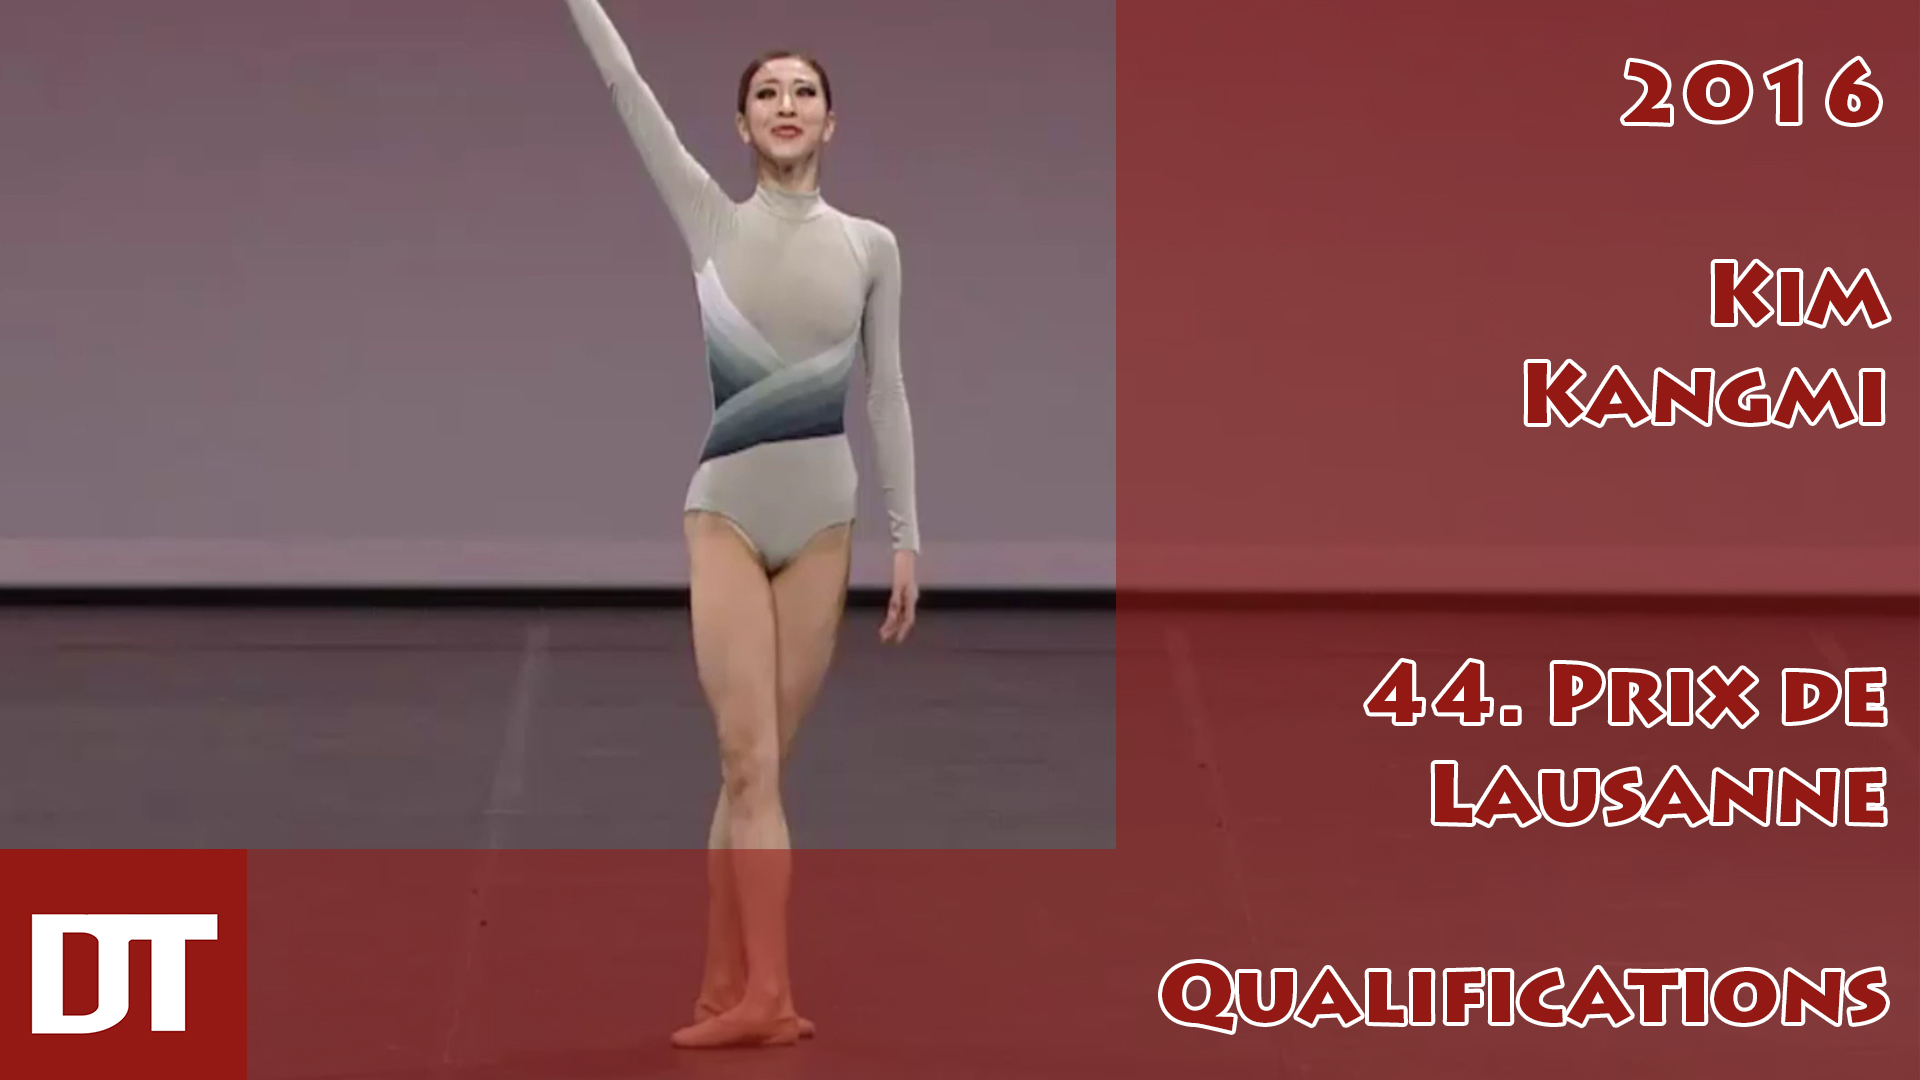 2016 – Kim Kangmi – 44. Prix de Lausanne – Qualifications